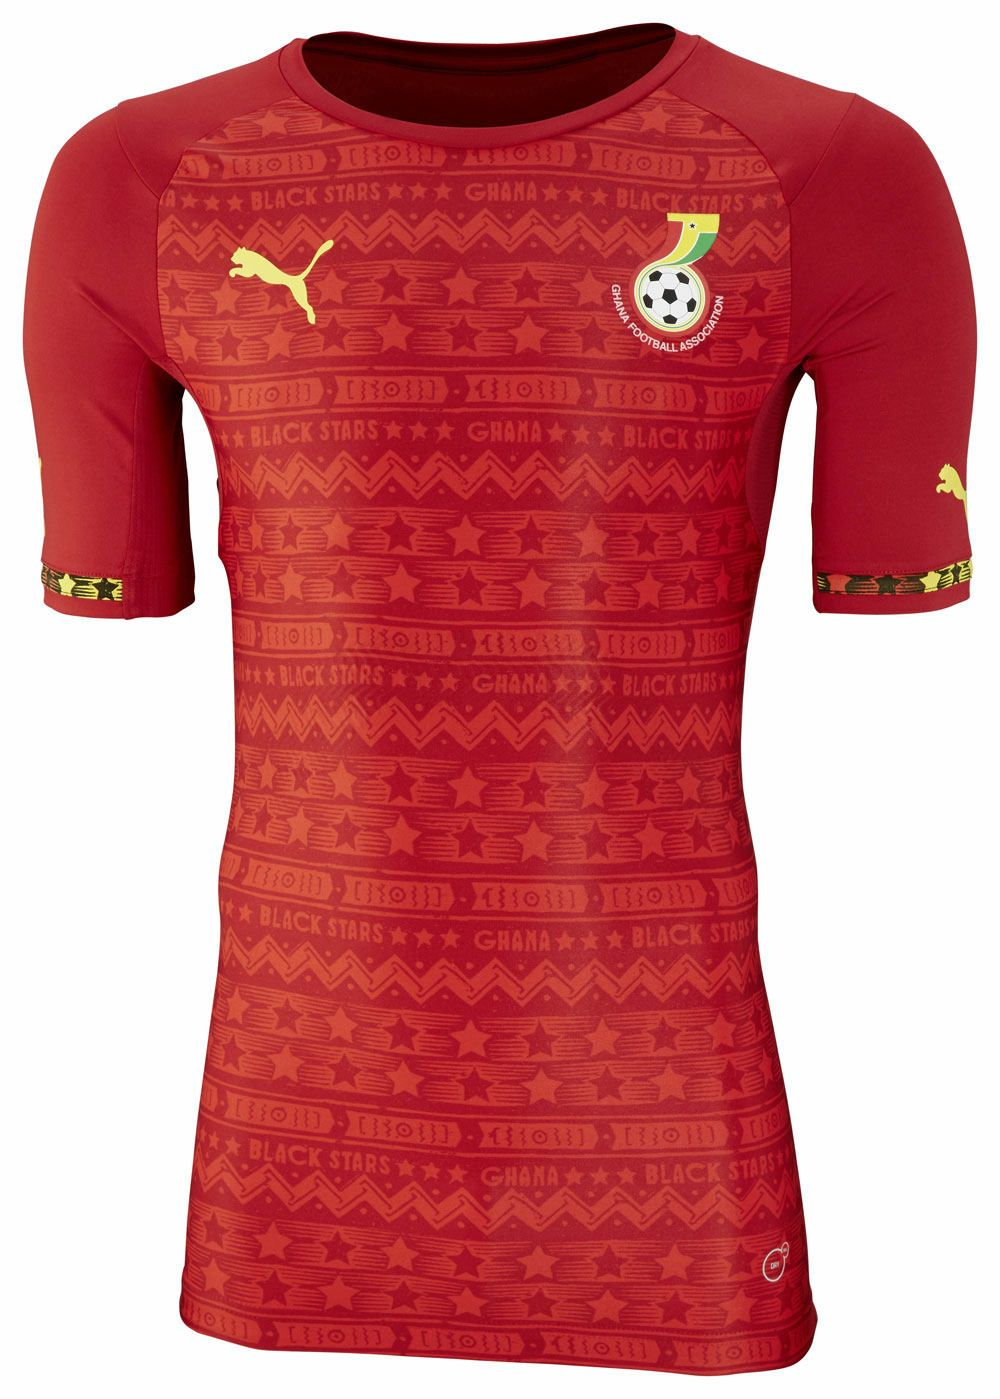 2015 Africa Cup of Nations Kits - Footy Headlines  c1201896e